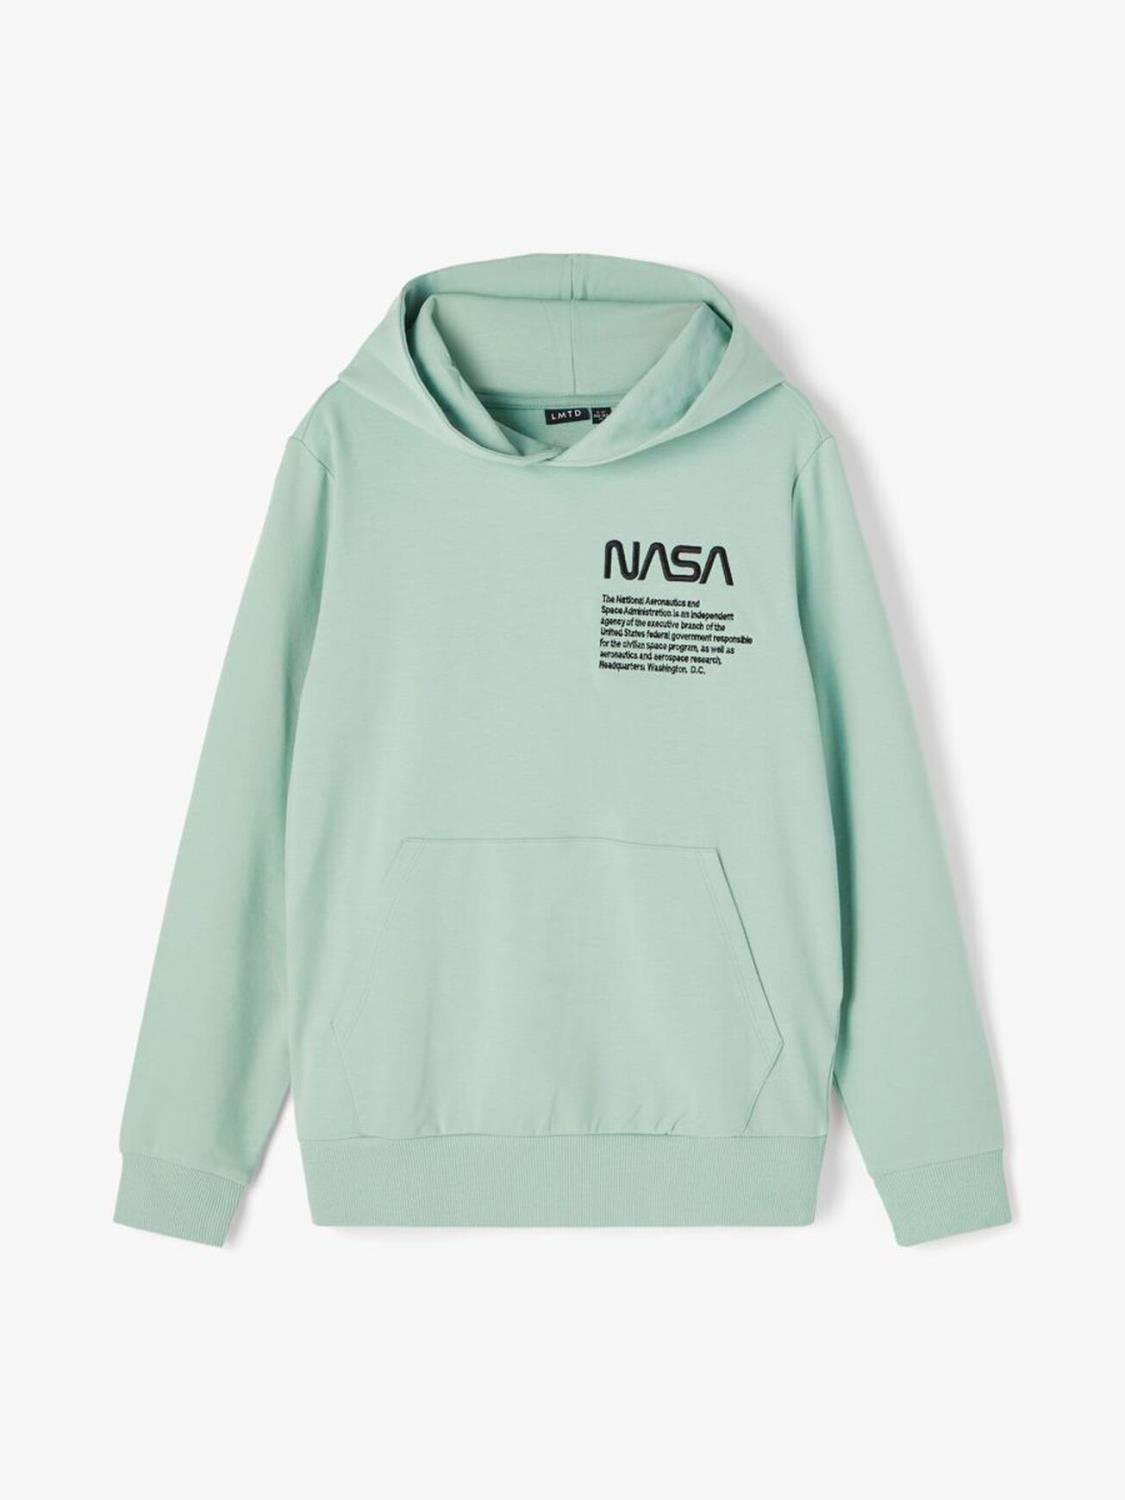 NASA ROB SWEAT BLUE SURF - LMTD